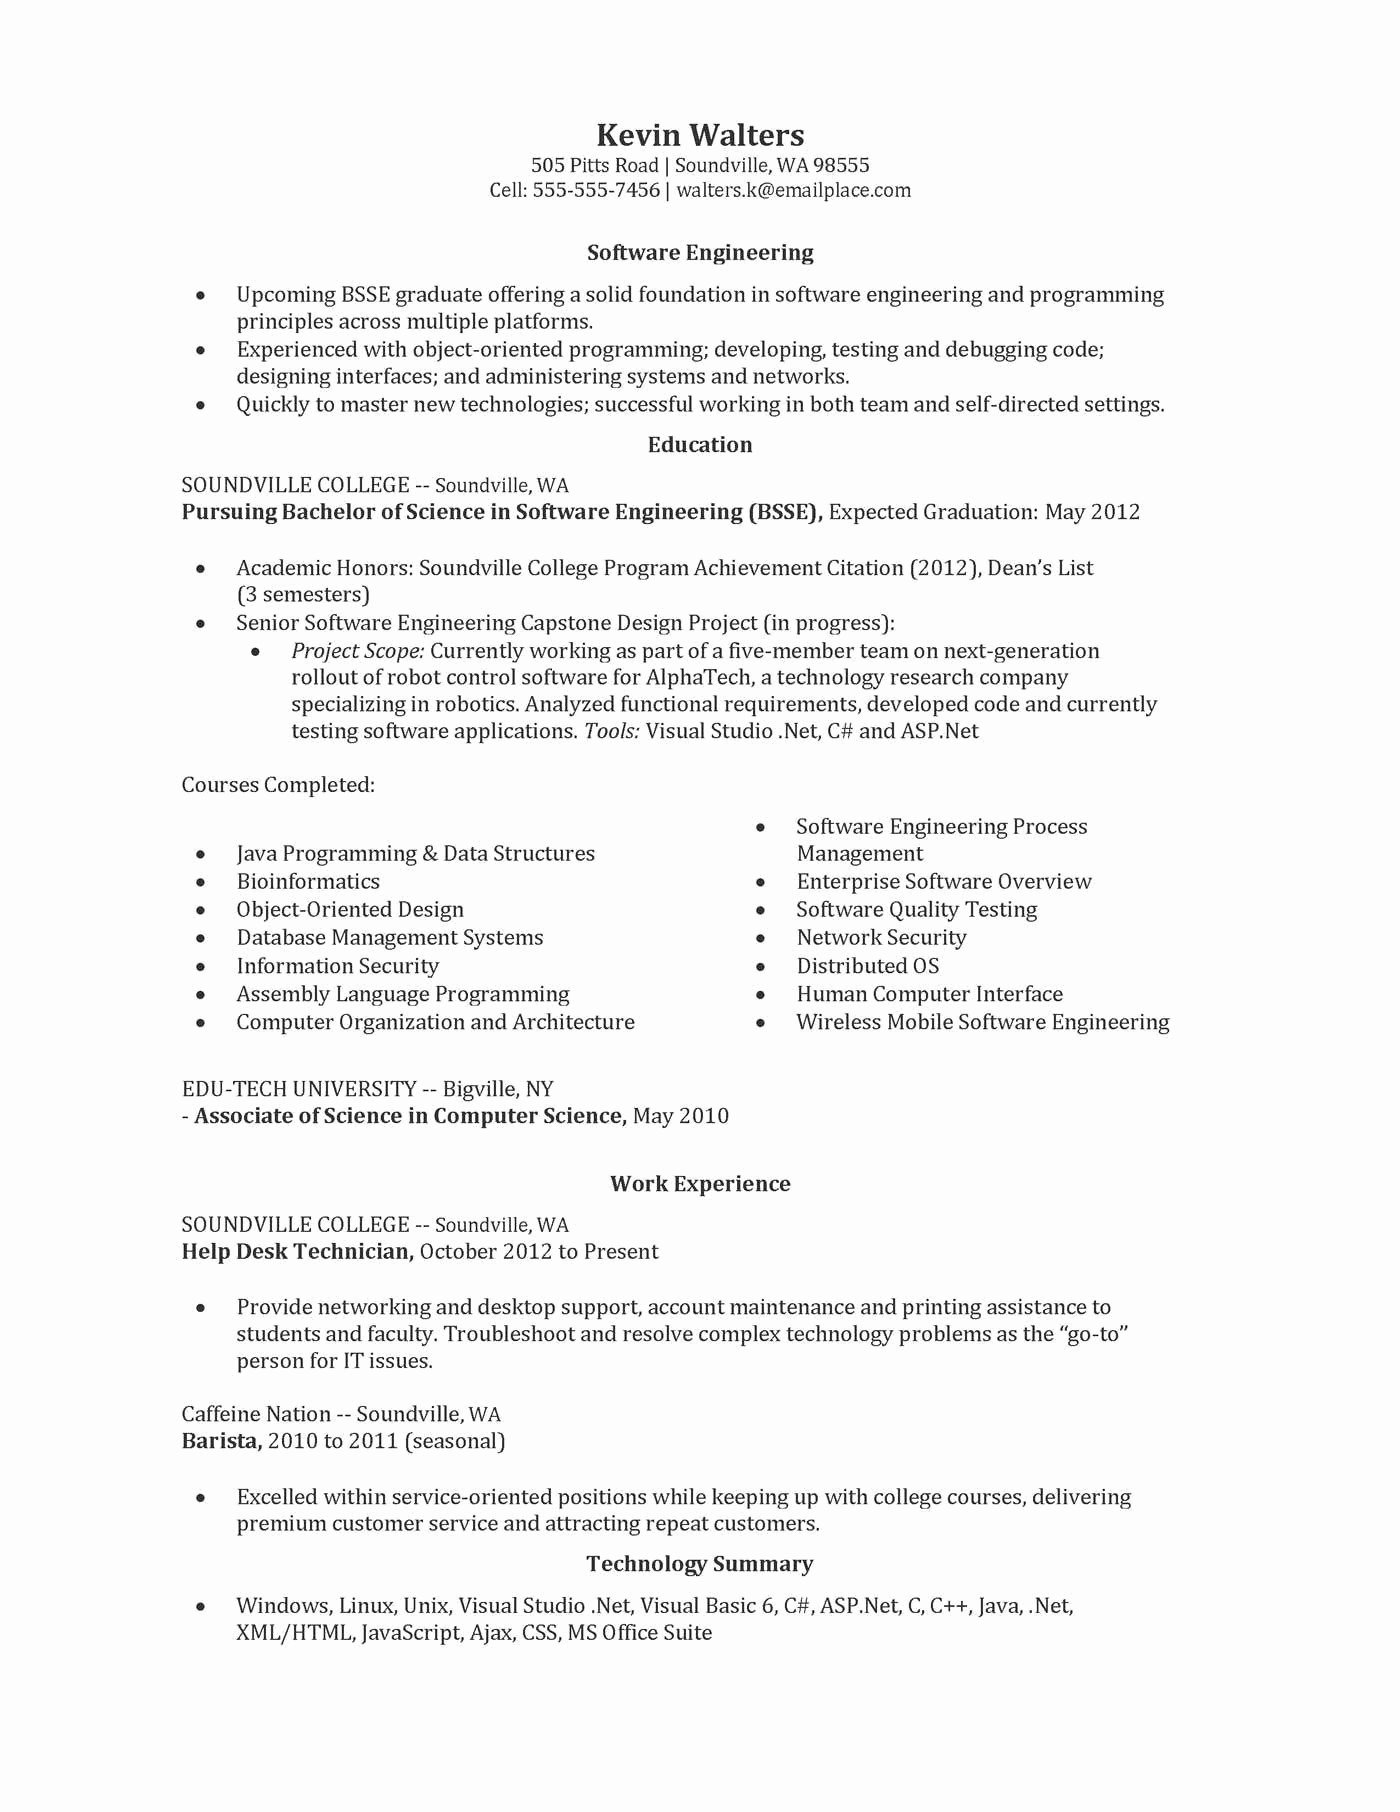 Engineering Cover Letter Template - Write Cover Letter How Do I Write Cover Letter for My Resume Ideas